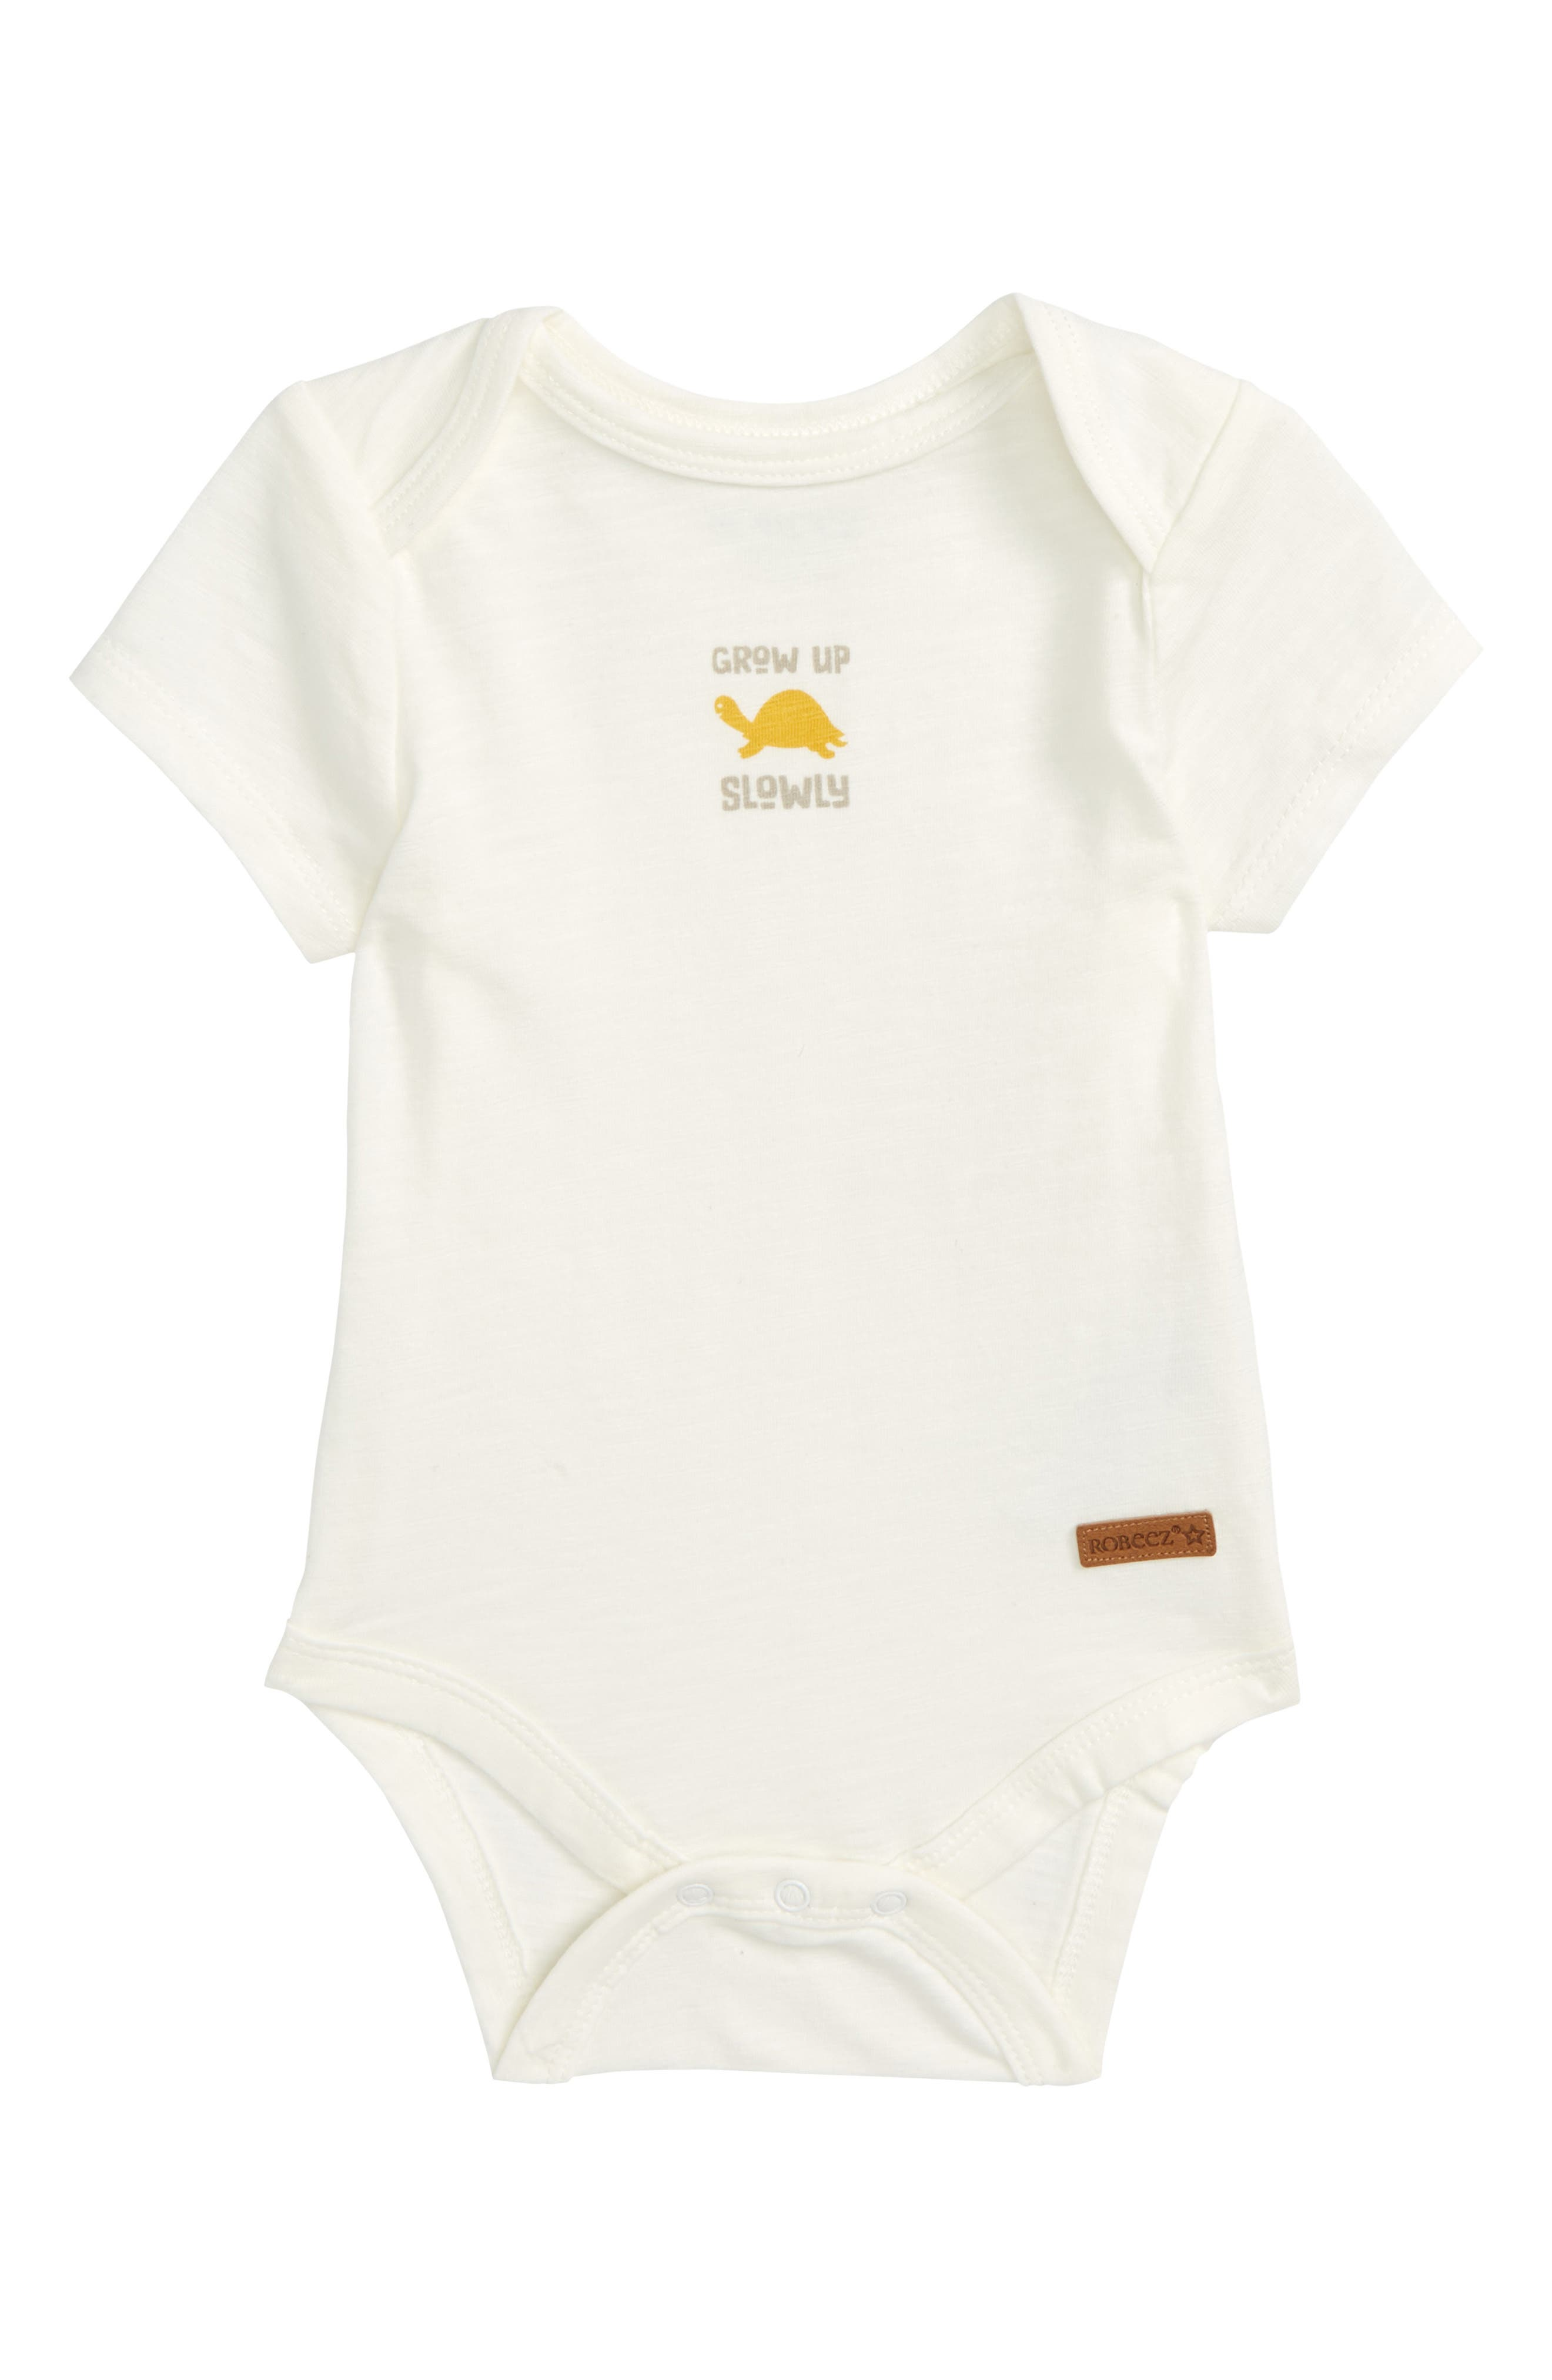 Grow Up Slowly Bodysuit,                         Main,                         color, White